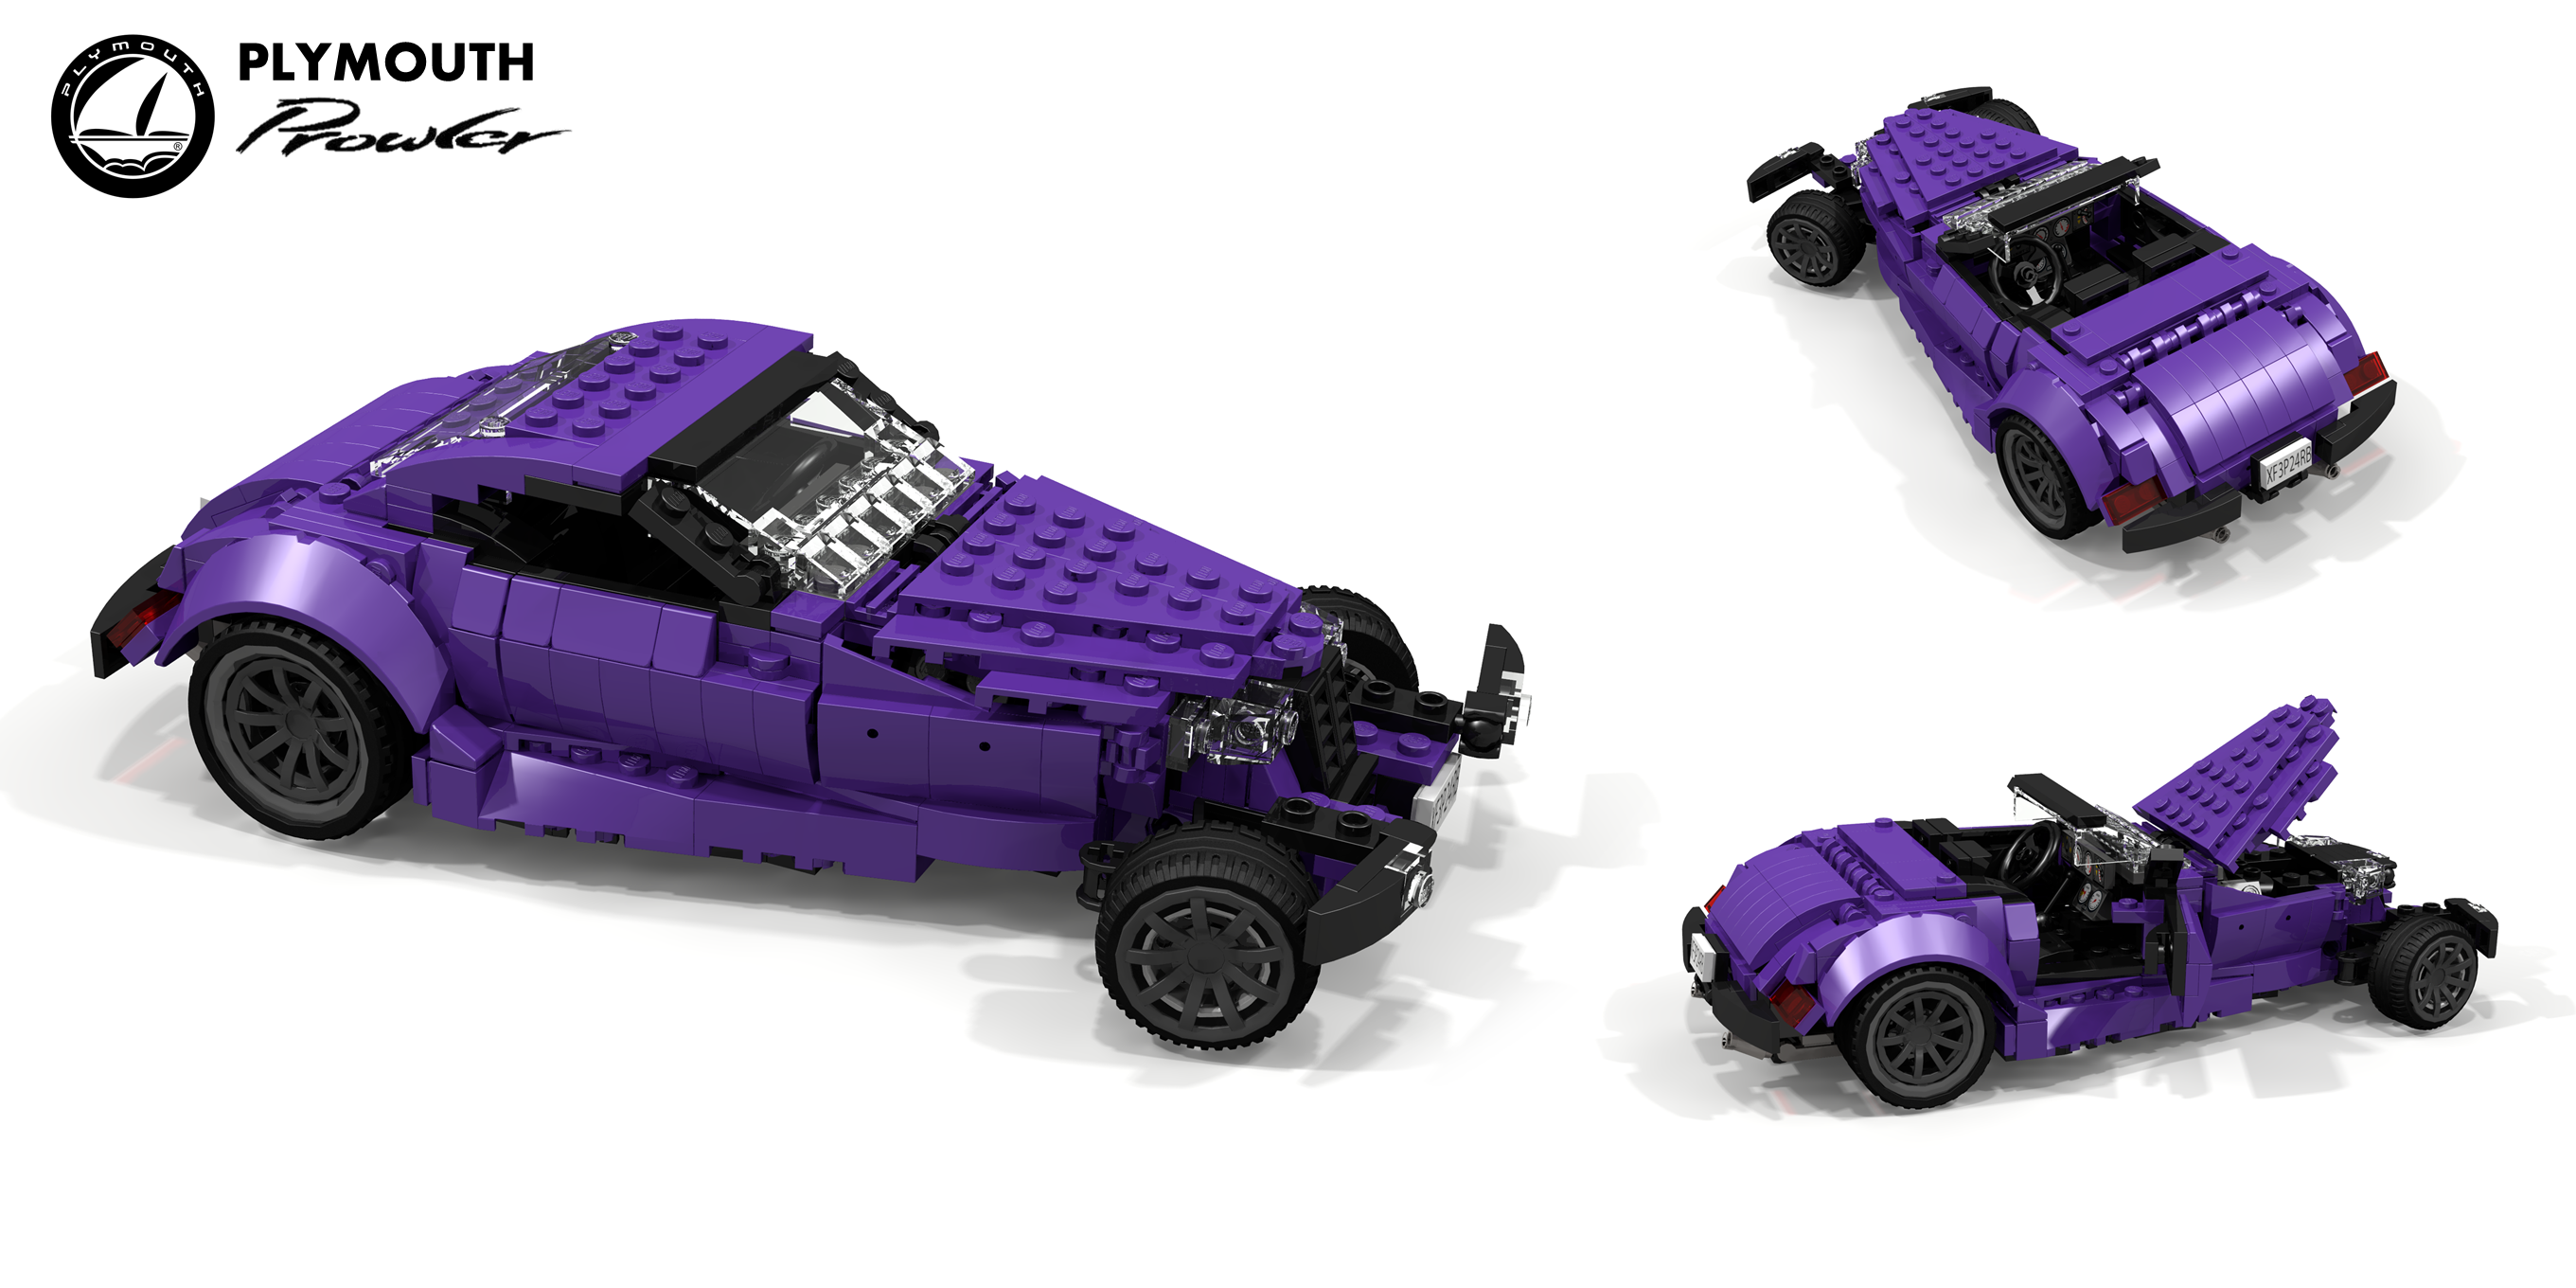 plymouth_prowler_11.png